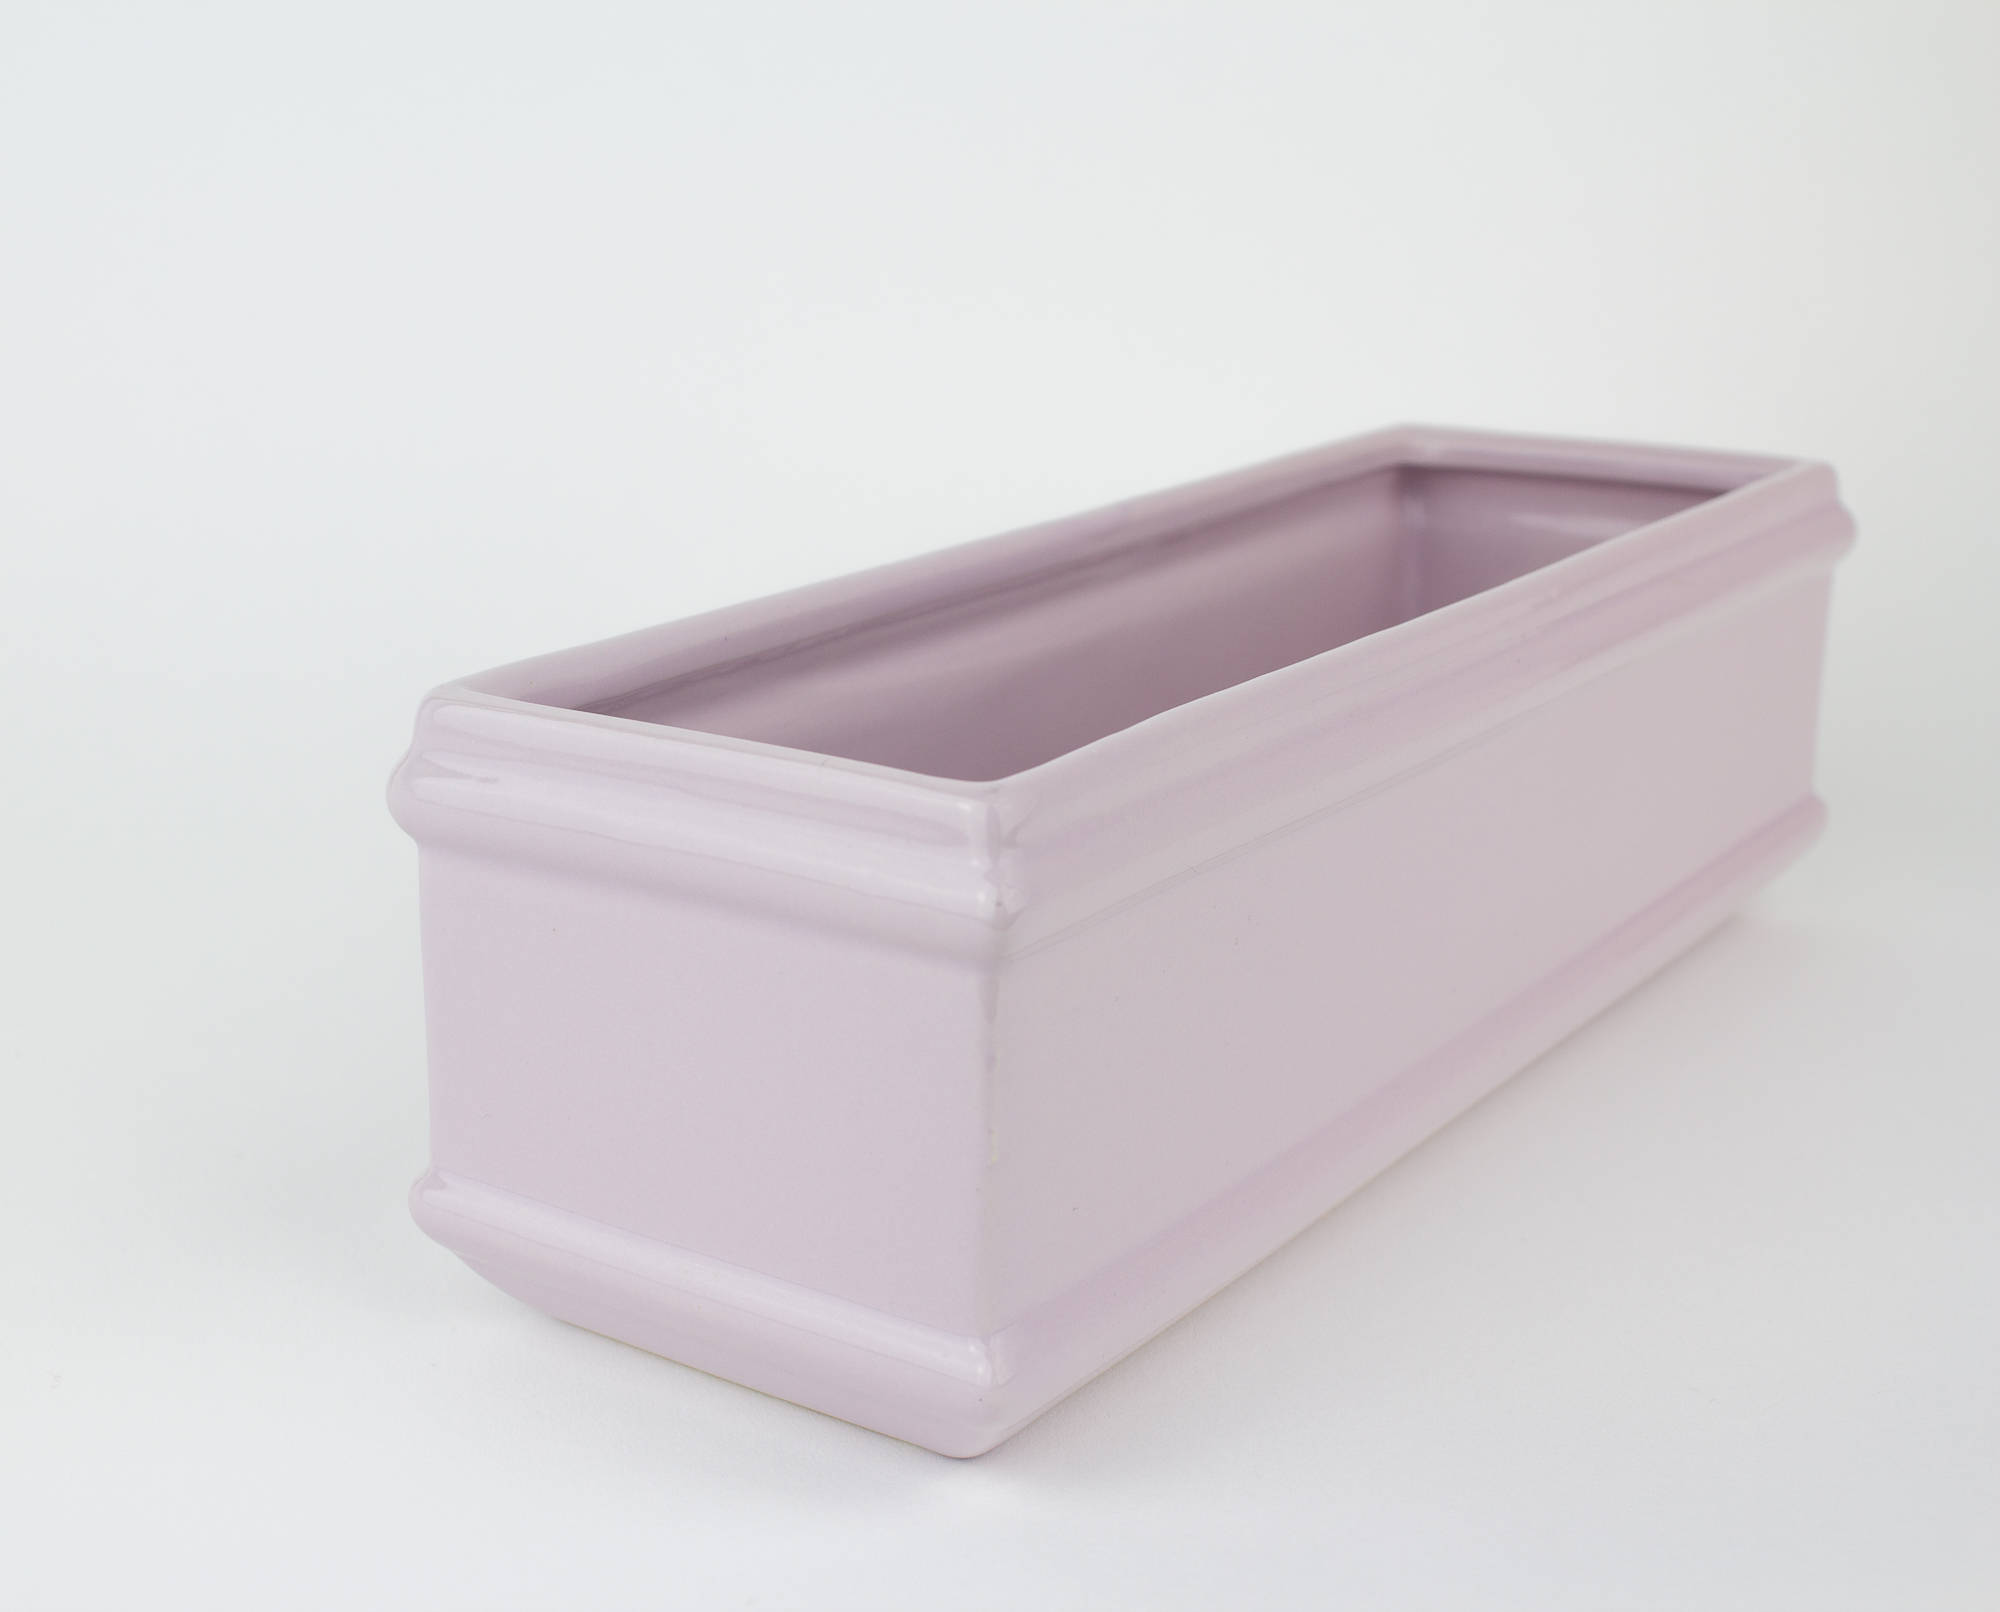 This beautiful lilac ceramic planter is just the perfect size for a spring window sill